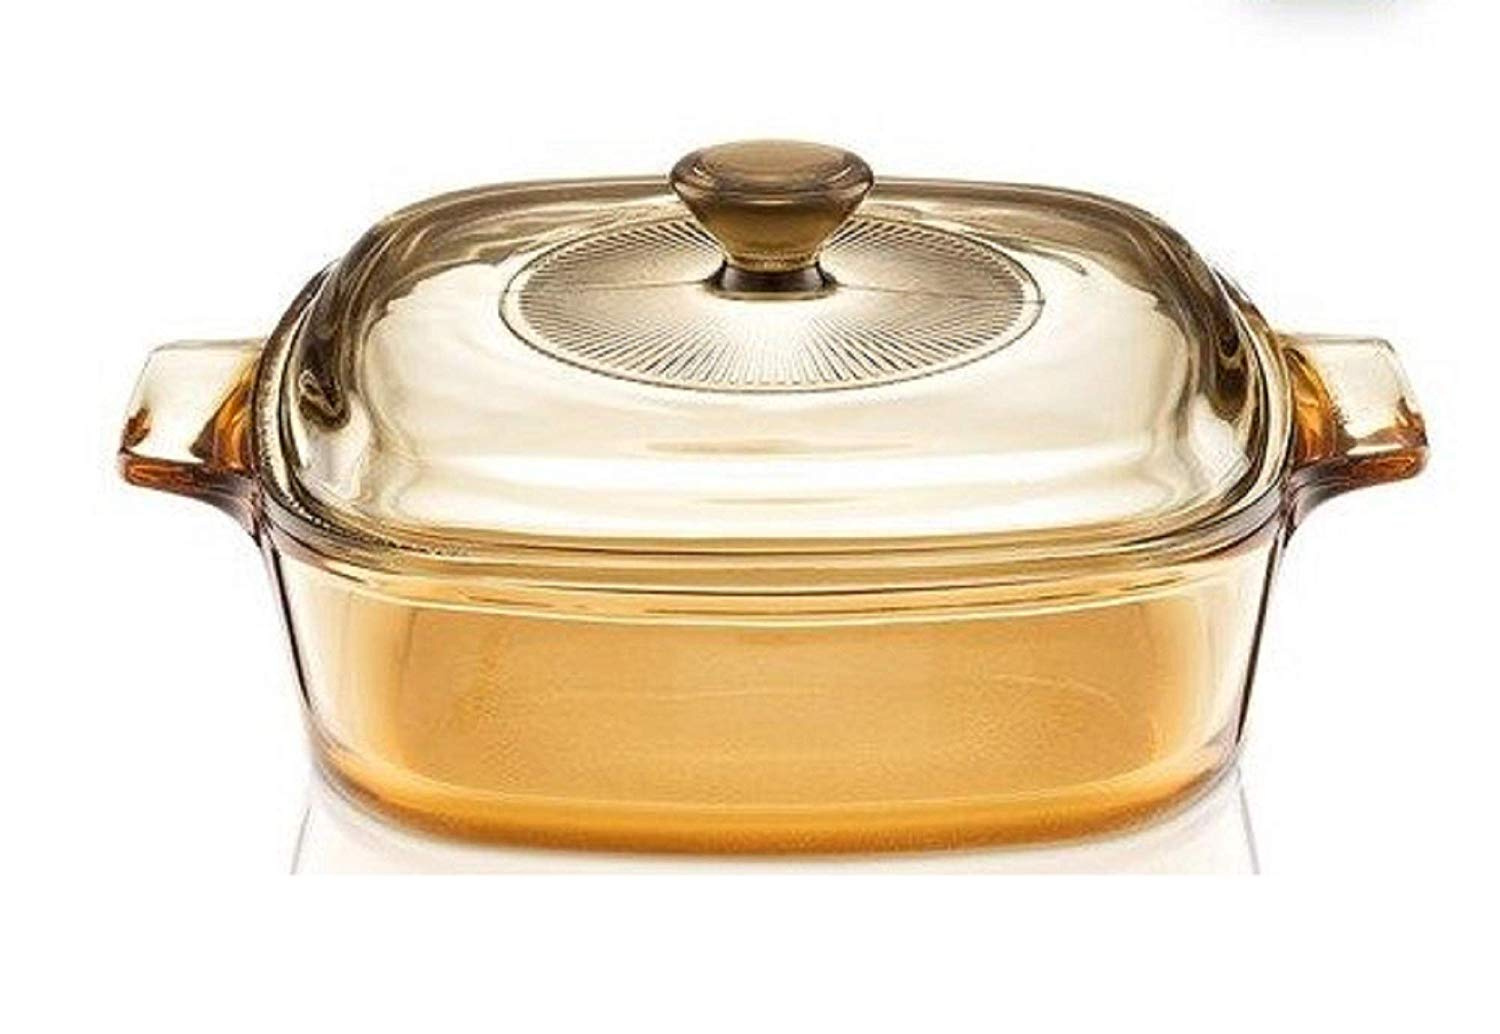 Visions Reverse 1l 0 9l Square Multi Pot Glass Ceramics Kitchen Cookware Multipot Dutch Oven Stockpot Cook Stock Pot With Lid By Visions Shop Online For Kitchen In Australia